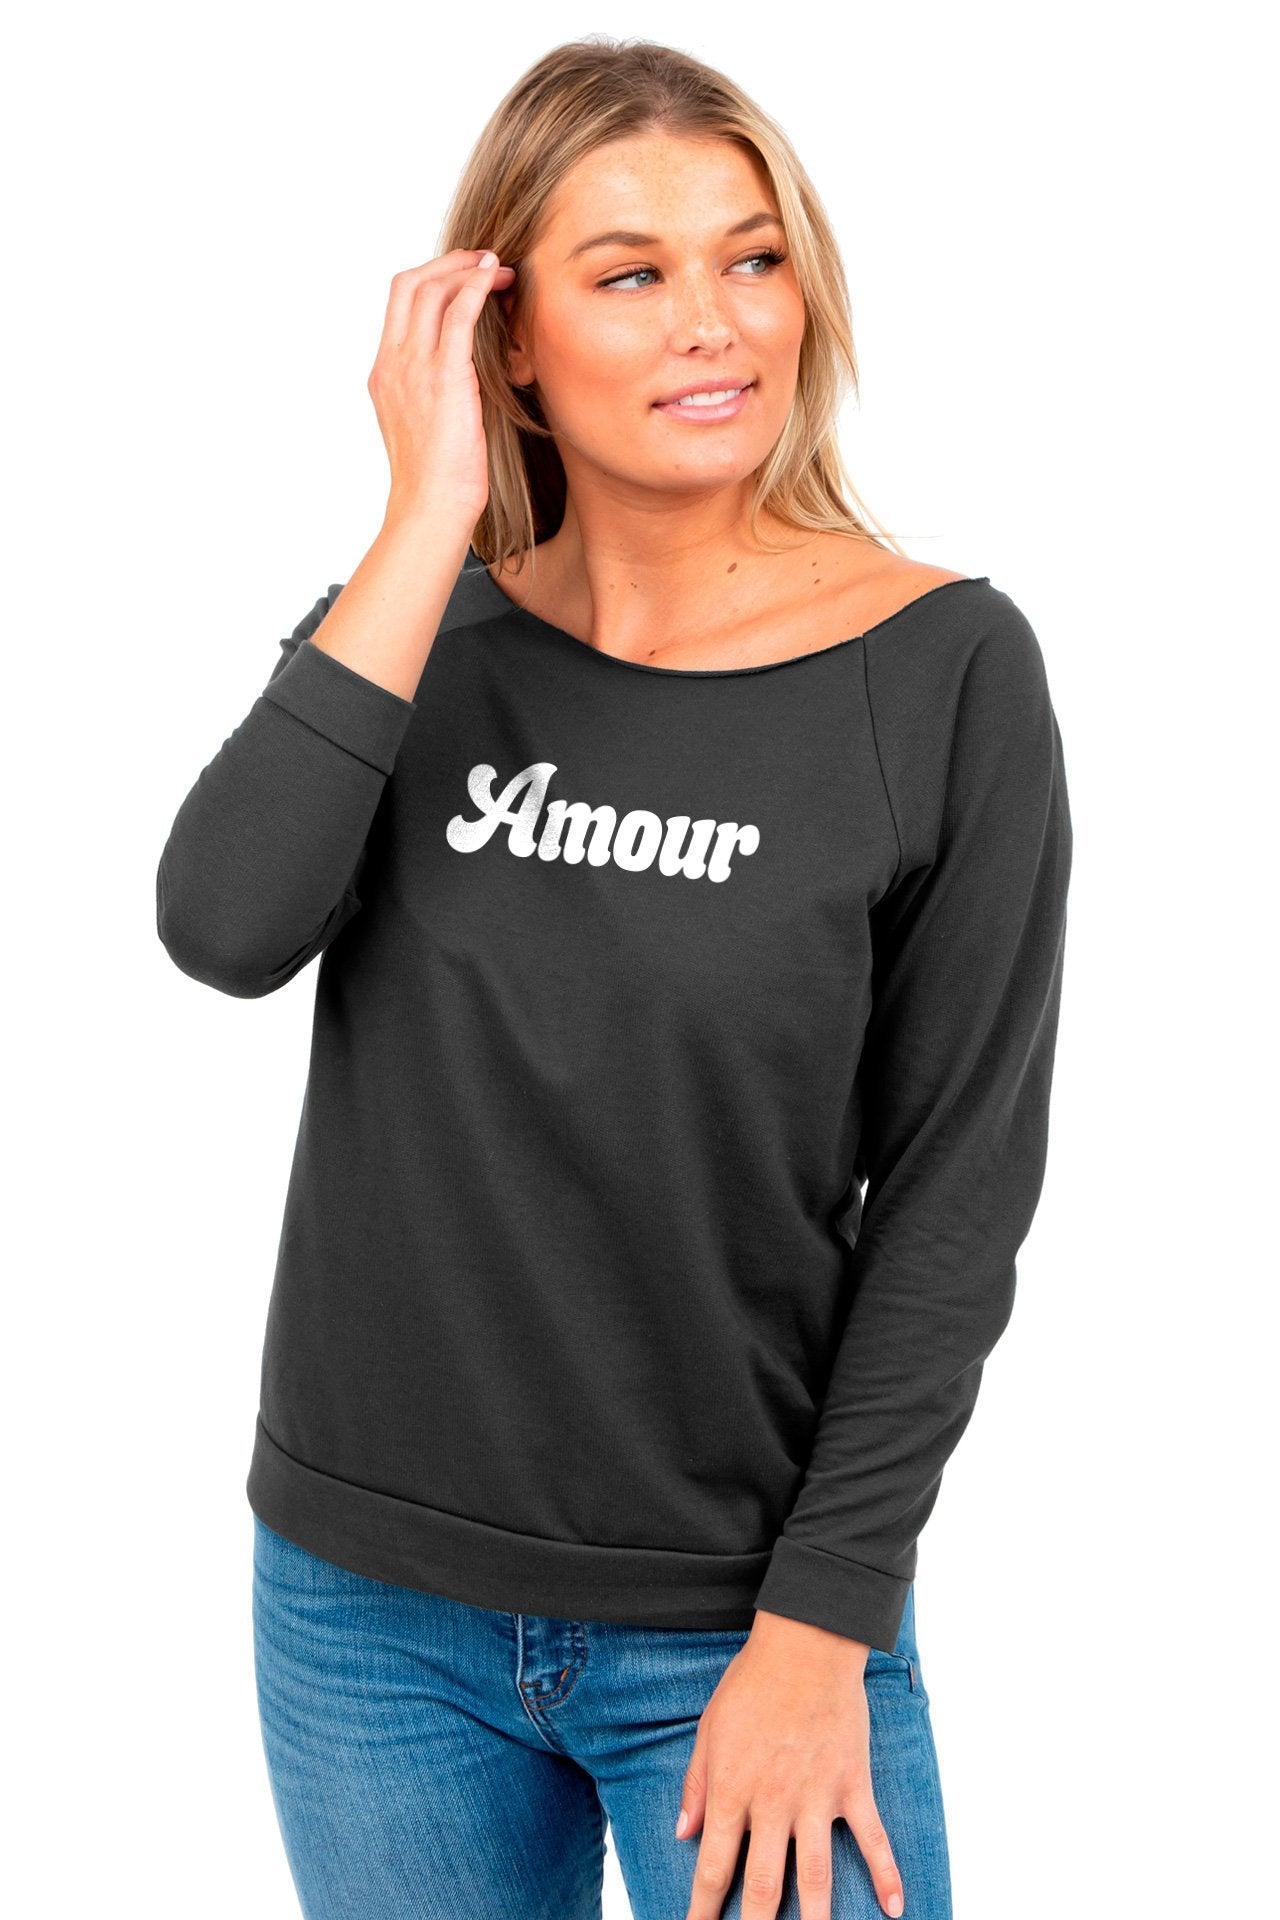 Amour Women's Graphic Printed Lightweight Slouchy 3/4 Sleeves Sweatshirt Sport Gunmetal